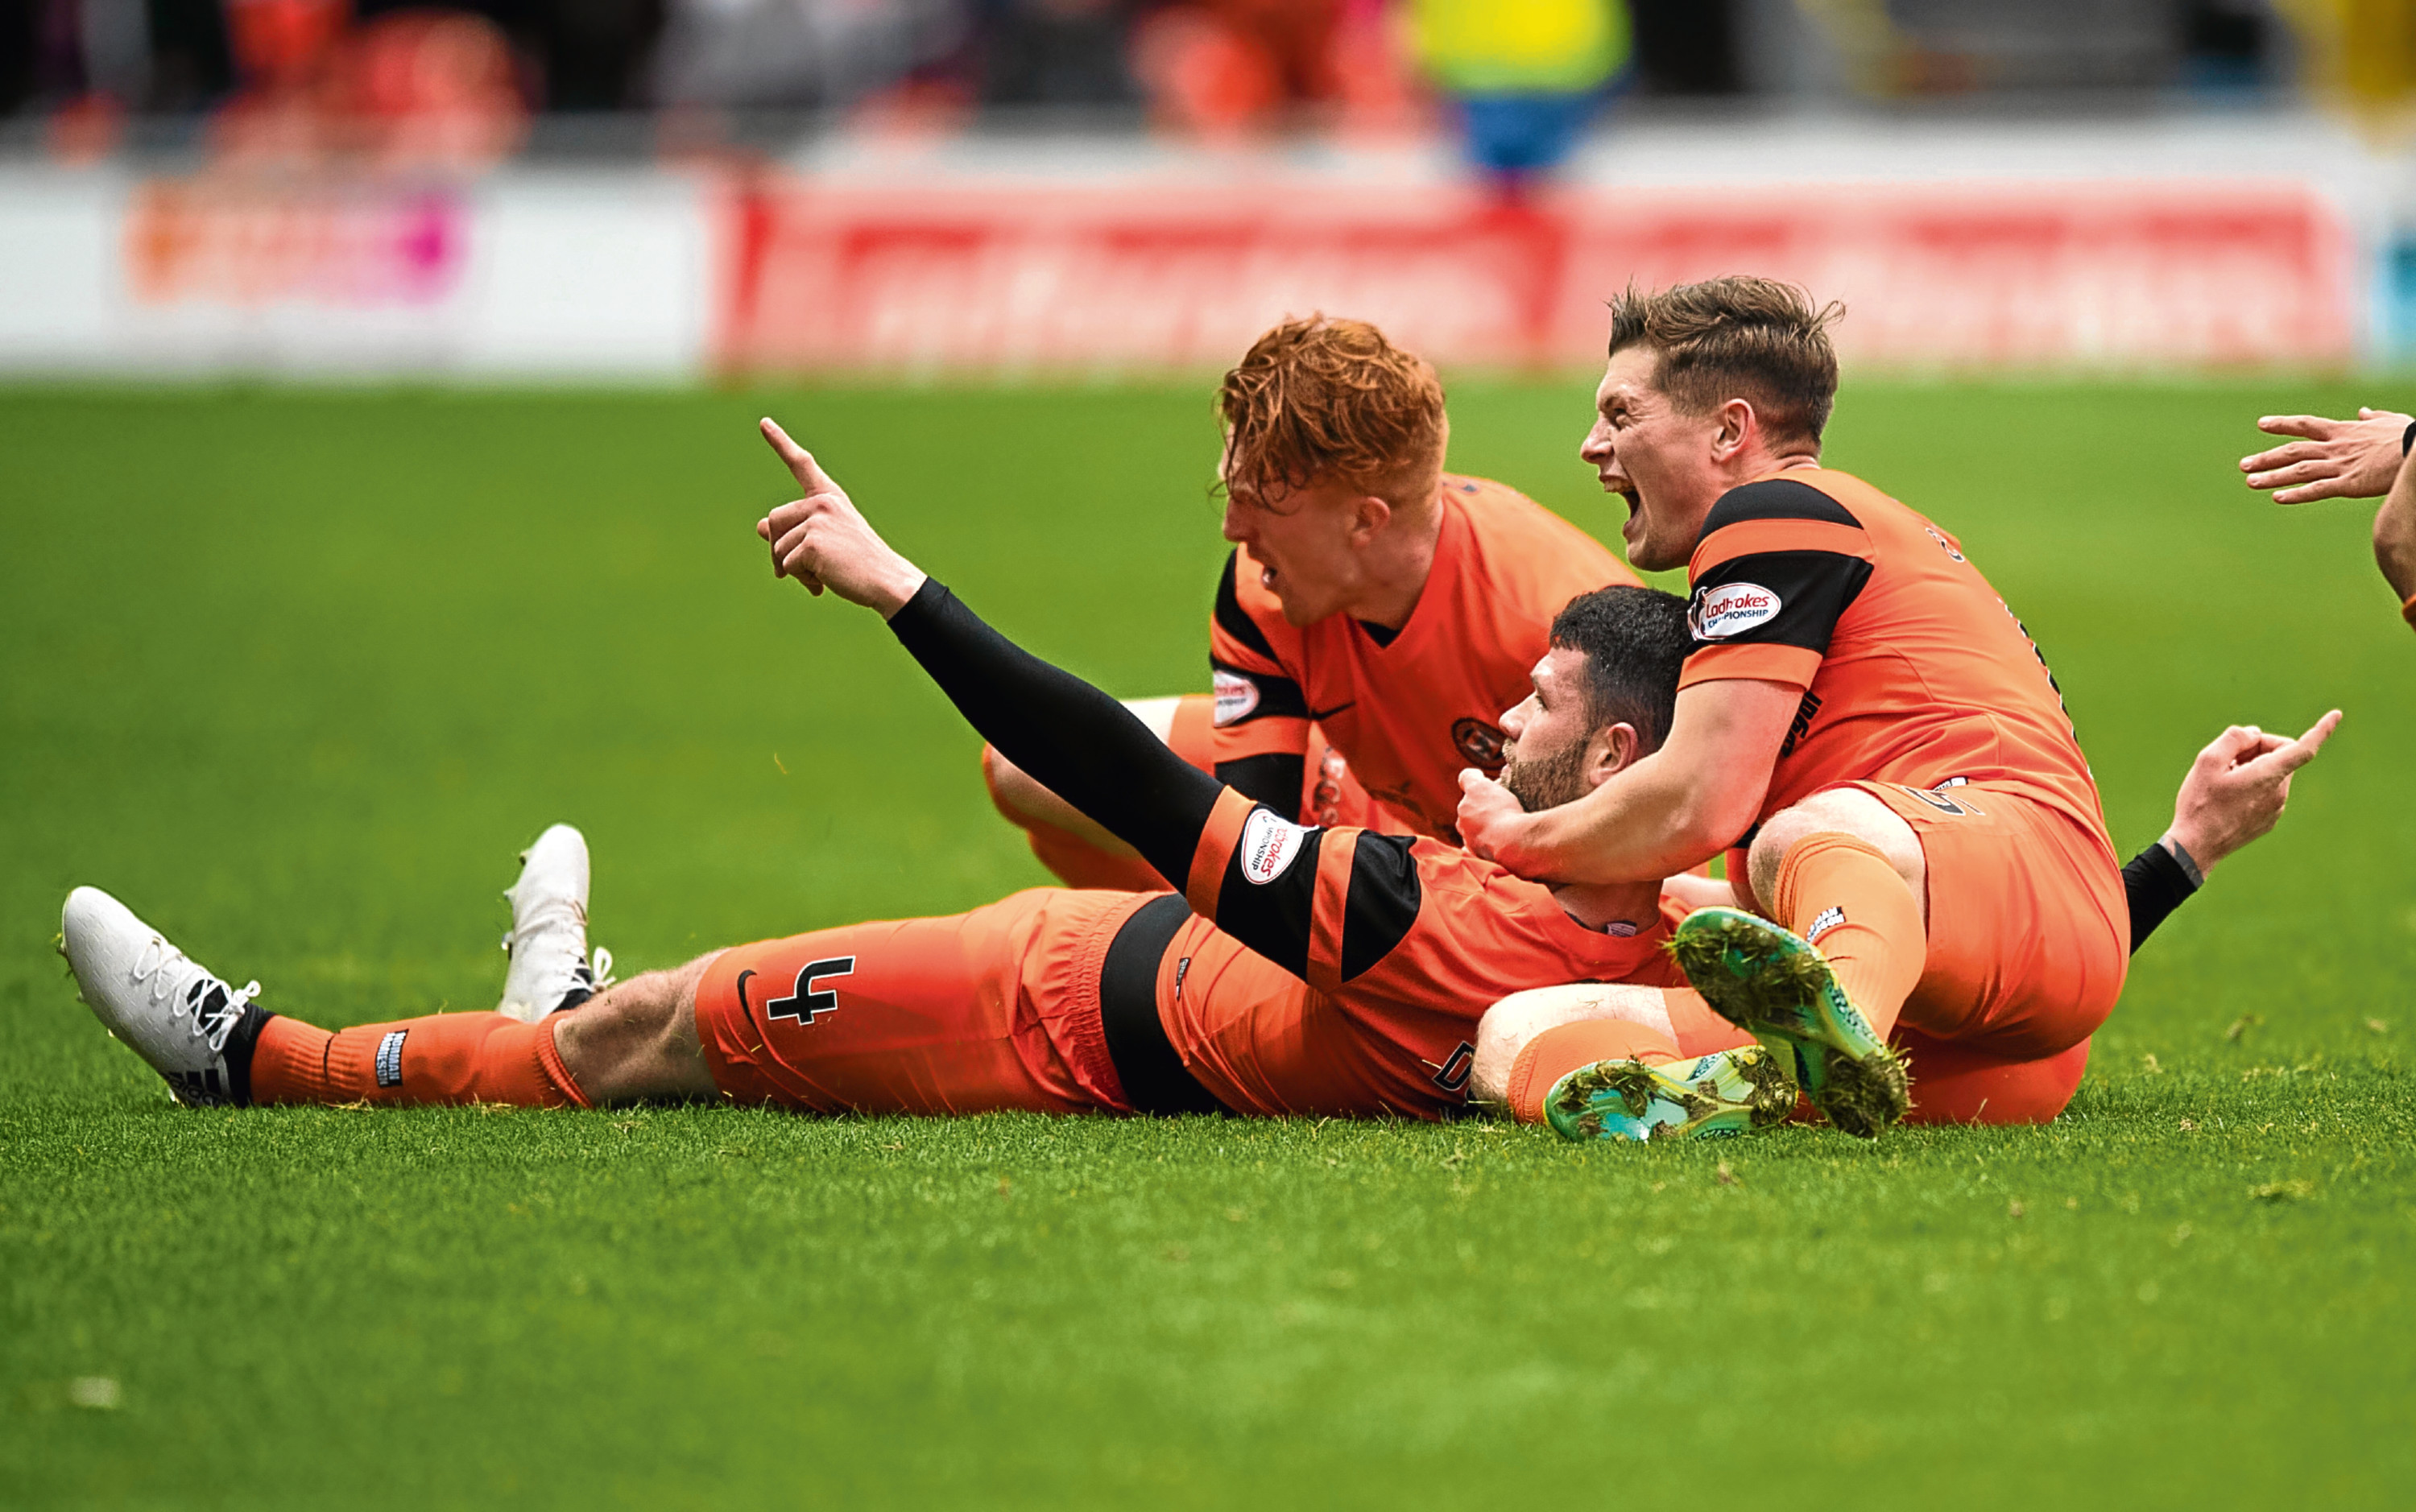 Dundee United centre-half Mark Durnan (centre) has had a run of excellent displays and bagged three vital goals since regaining his starting XI spot in Ray McKinnon's heavily-revised team.